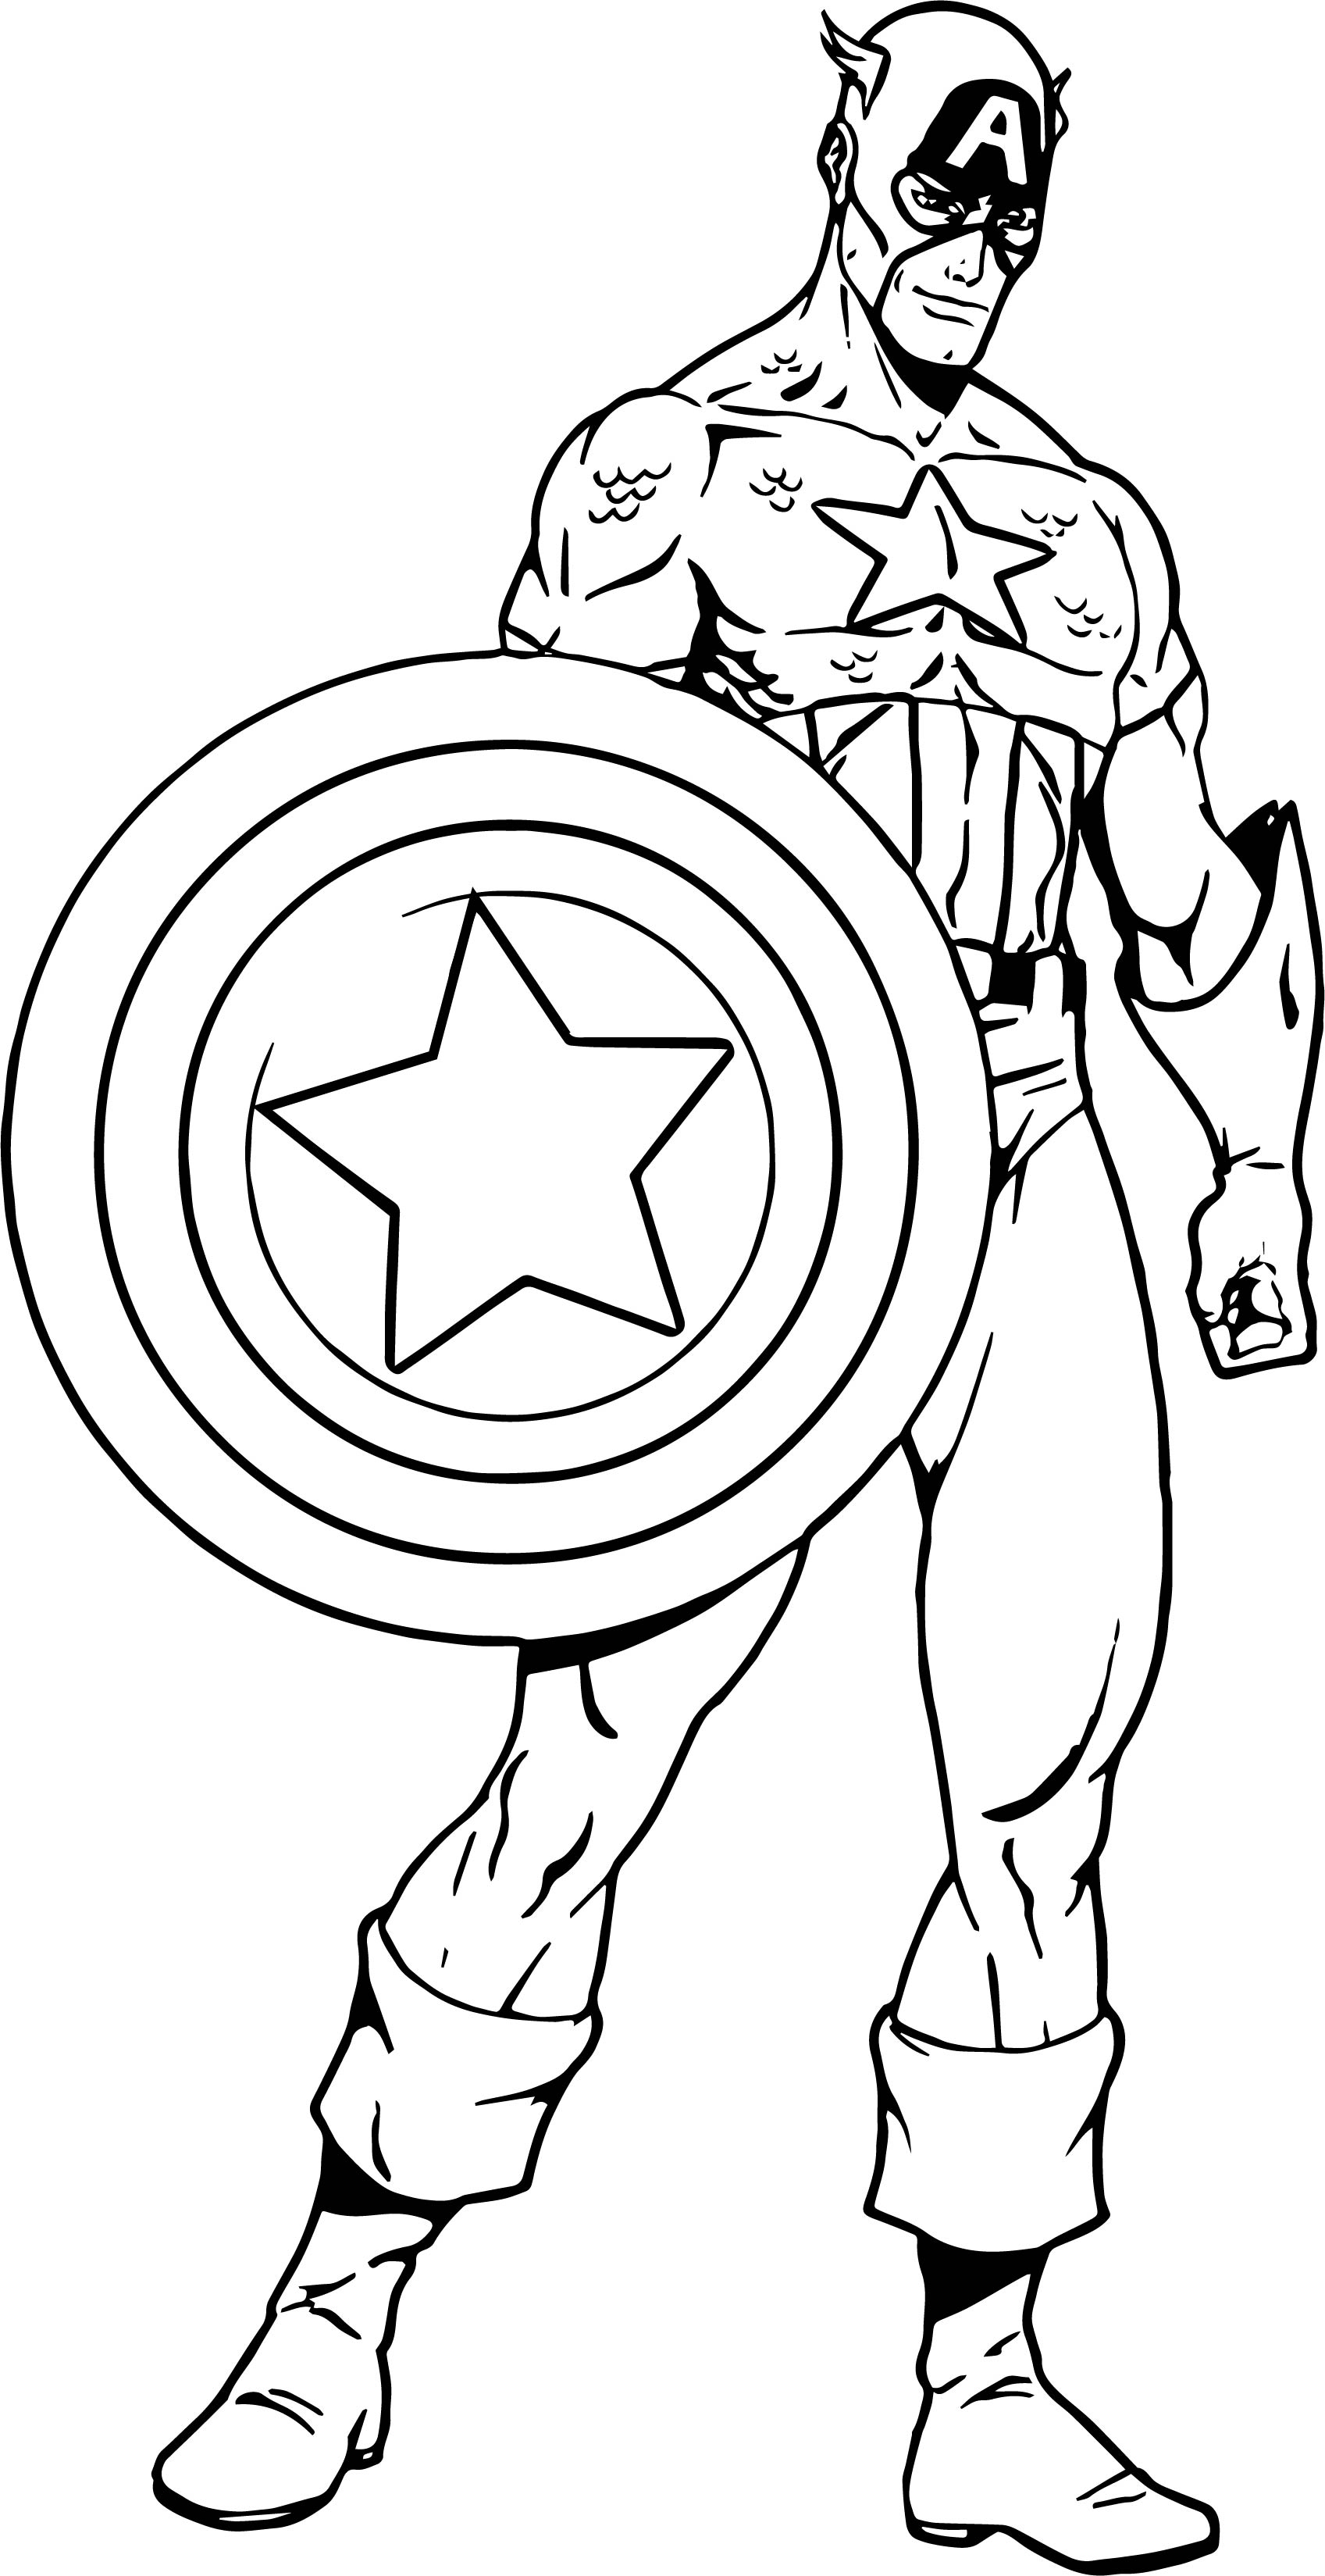 Captain america captain ready coloring page for Coloring pages captain america